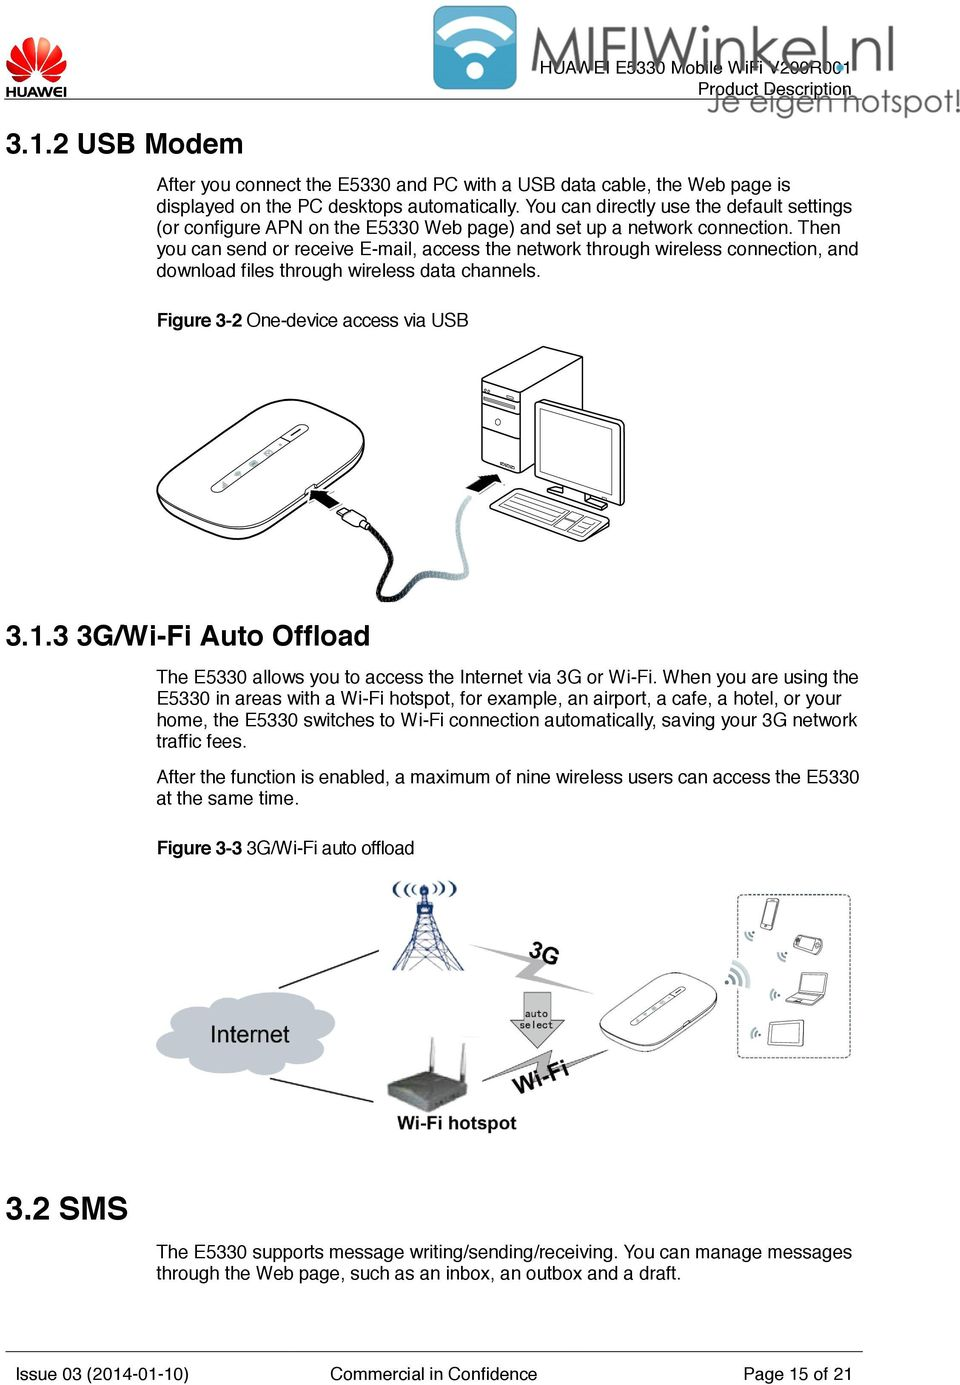 Product Description  HUAWEI E5330 Mobile WiFi V200R001 HUAWEI